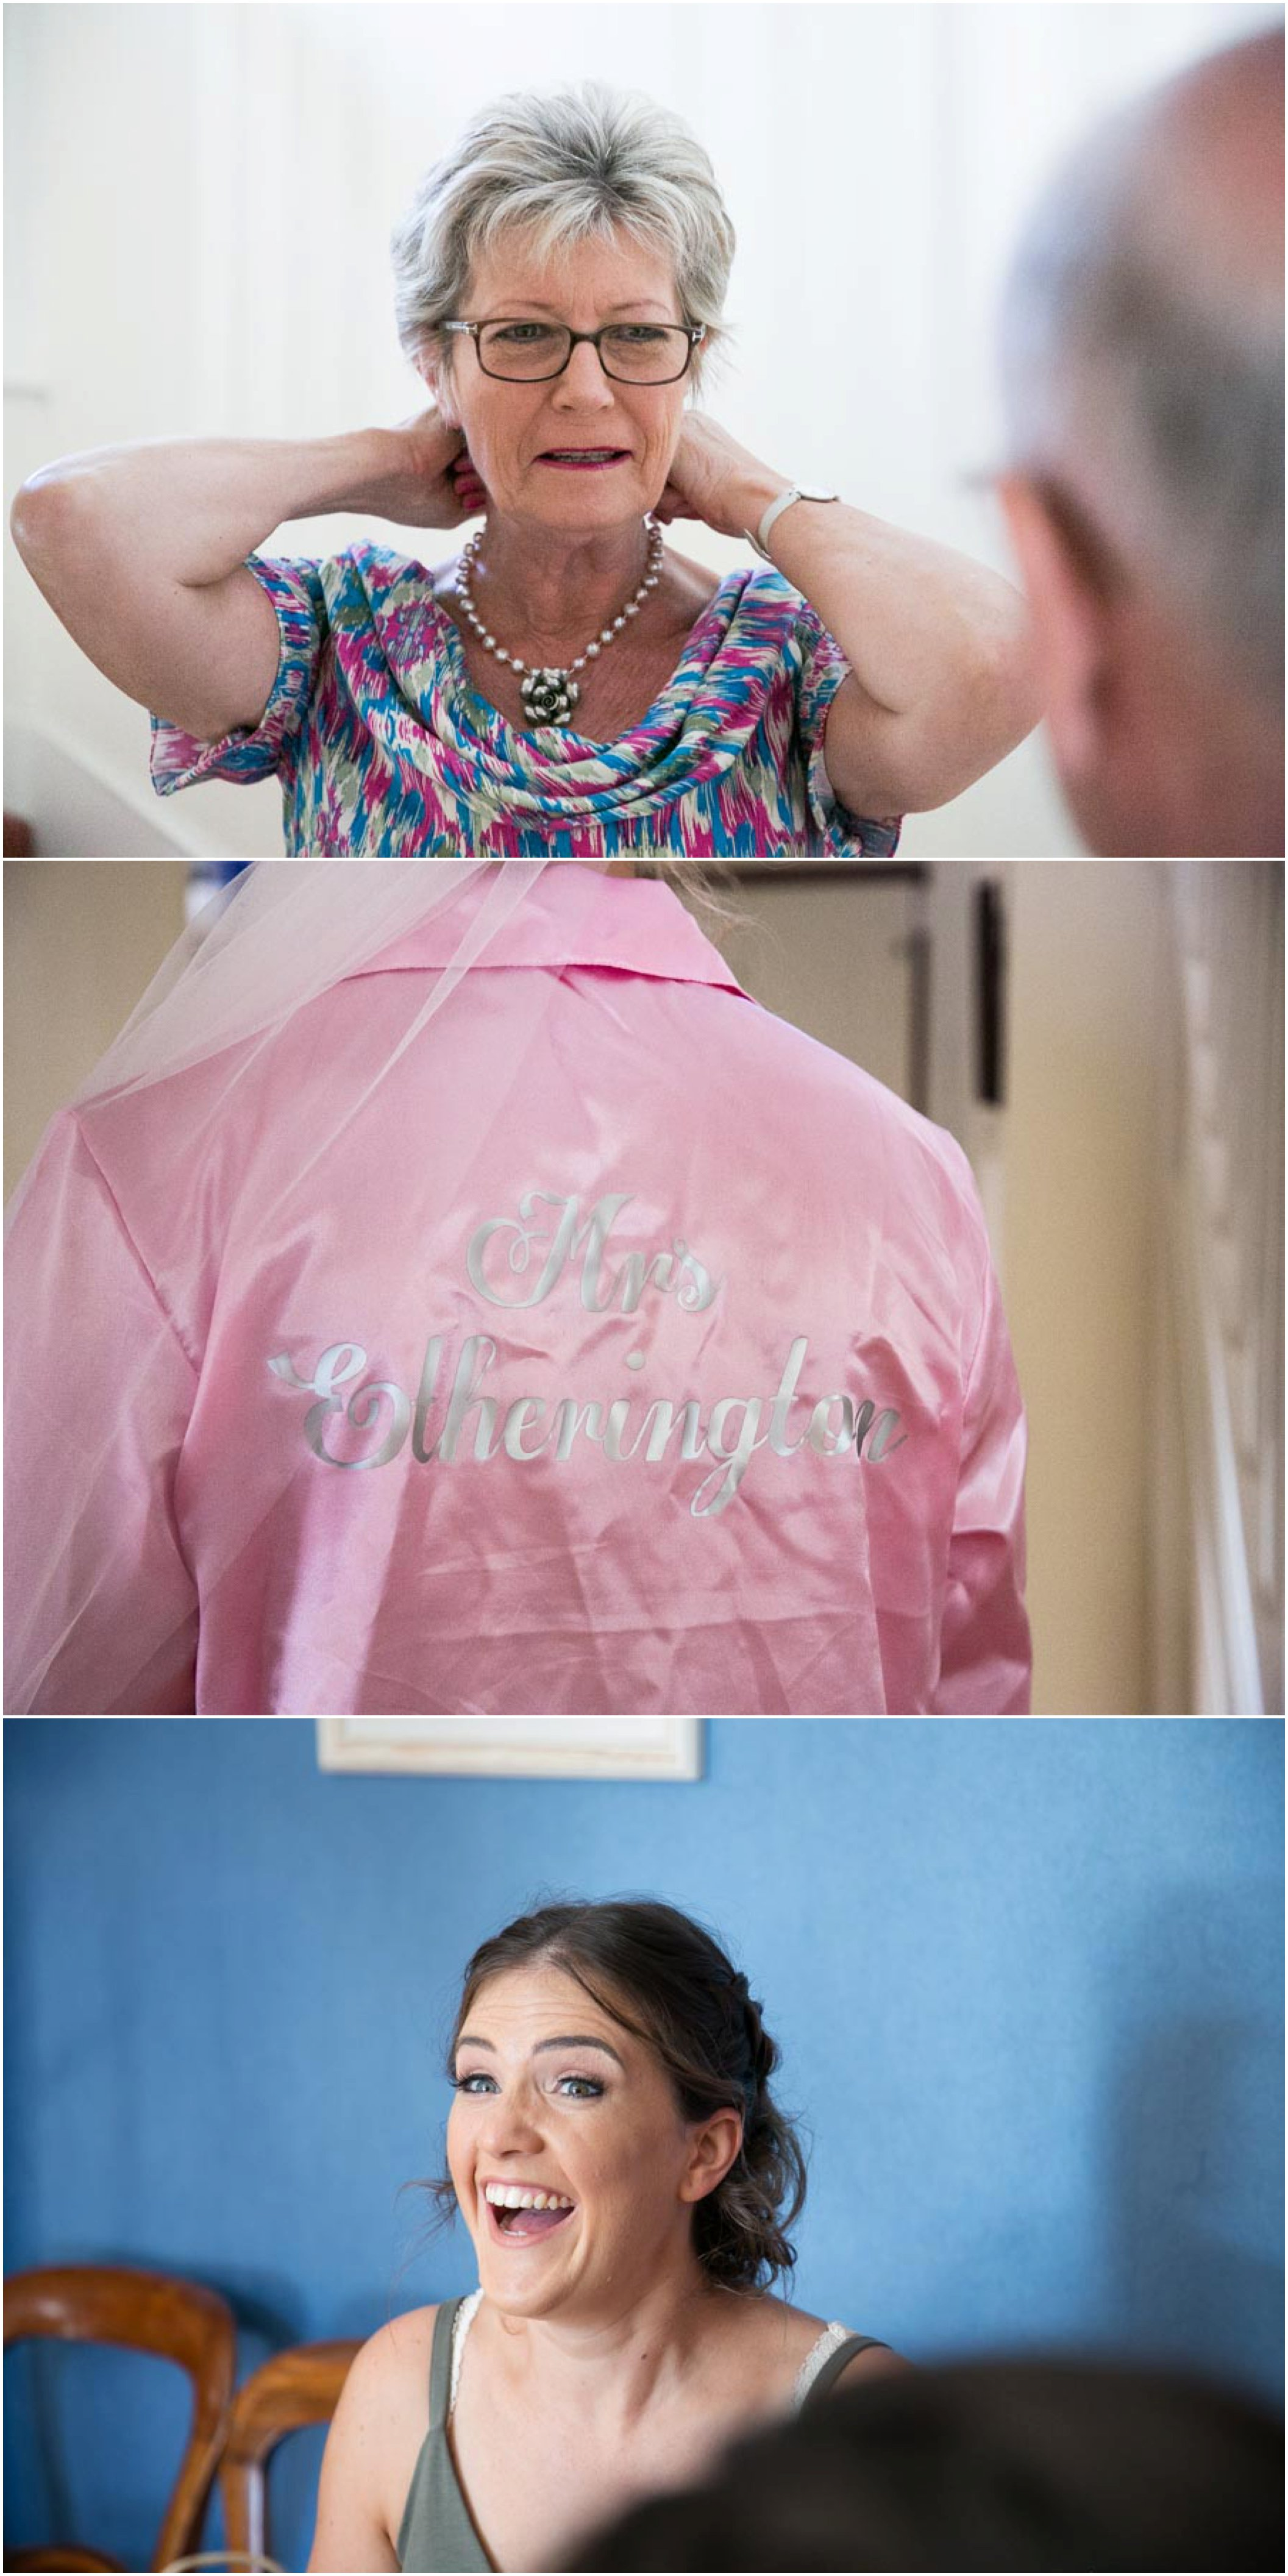 mother of the bride getting necklace on, bride to be's embroidered dressing gown, getting ready for wedding. 3 images